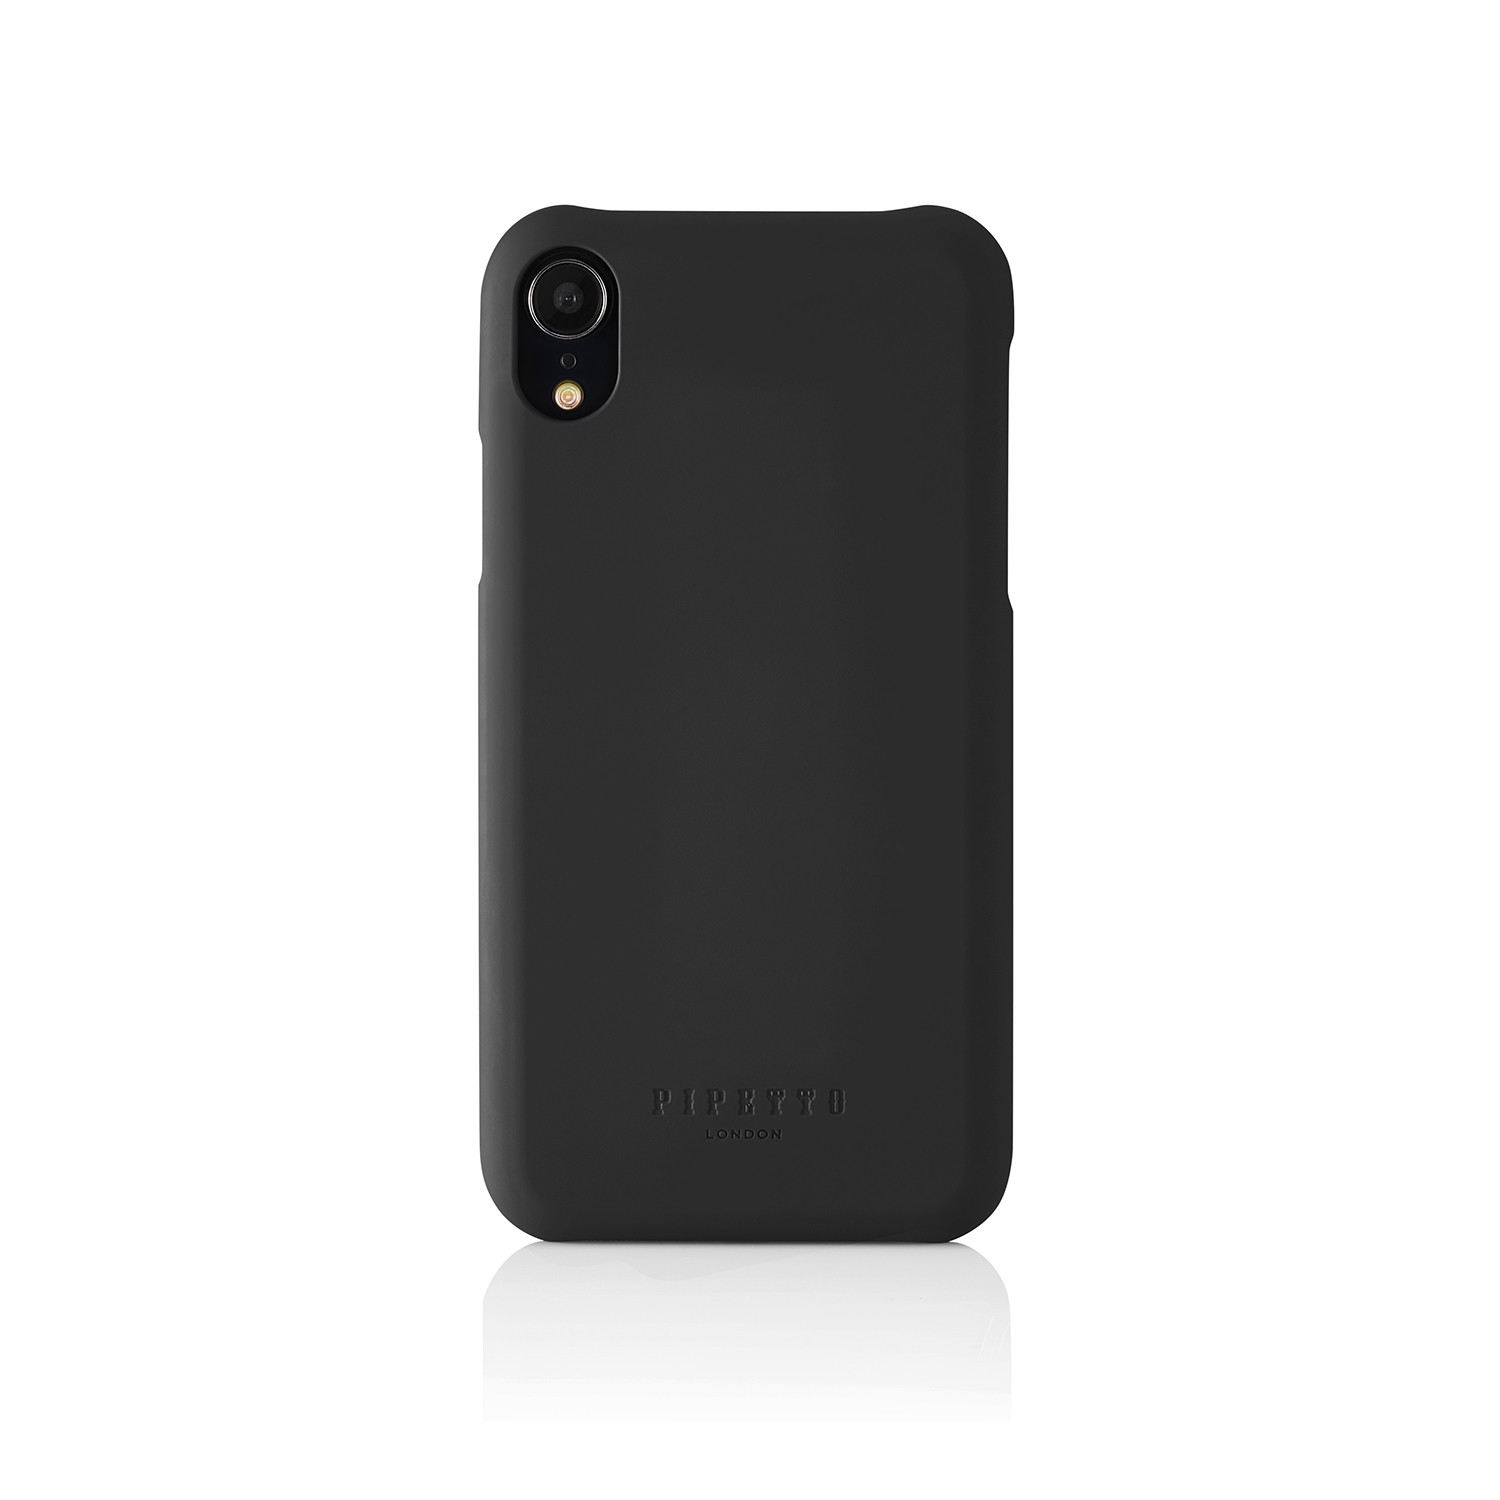 timeless design 947e4 f01a7 iPhone XR Case Magnetic Shell - Dark Grey